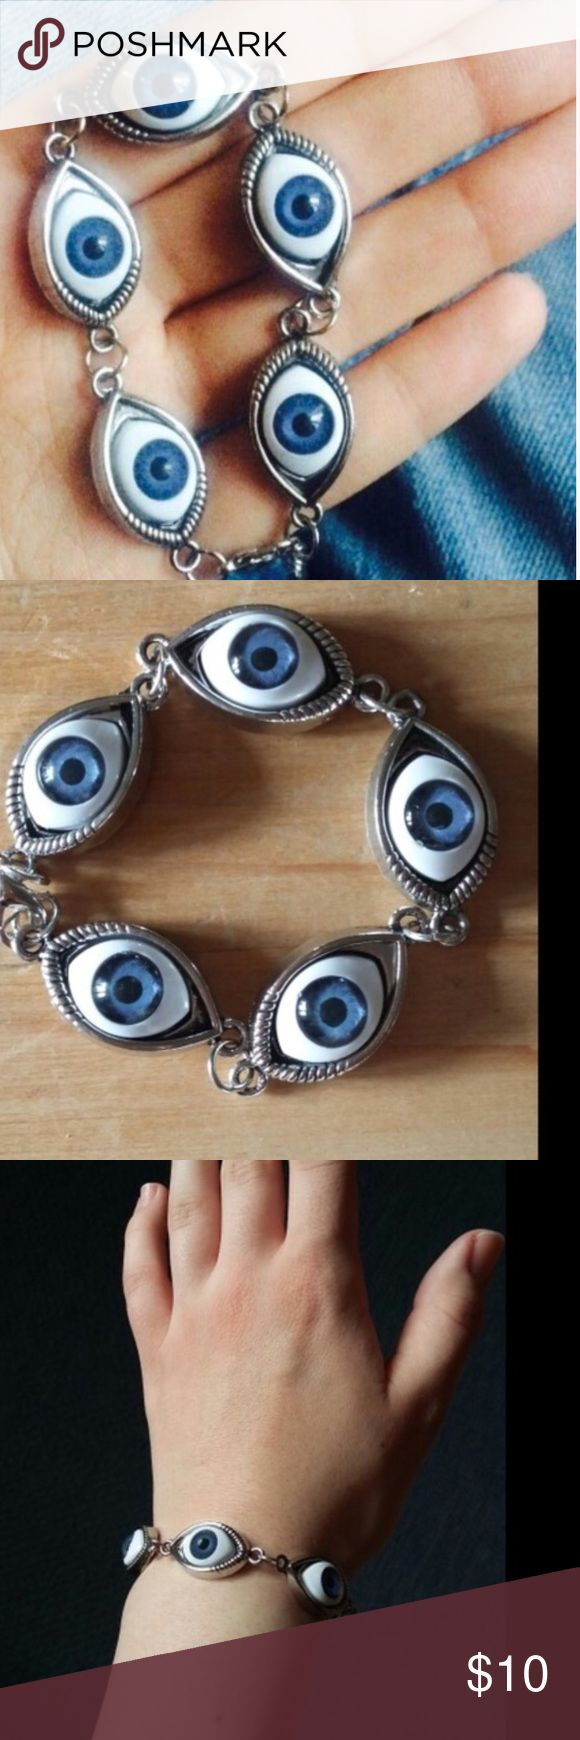 "Evil eye bracelet Price firm unless bundled. Synthetic materials. Statement. Silver tone. 5 blue eyes. Approximately 6"" long with 2"" extender and lobster clasp. No pp no trades. This item available for wholesale. Jewelry Bracelets"